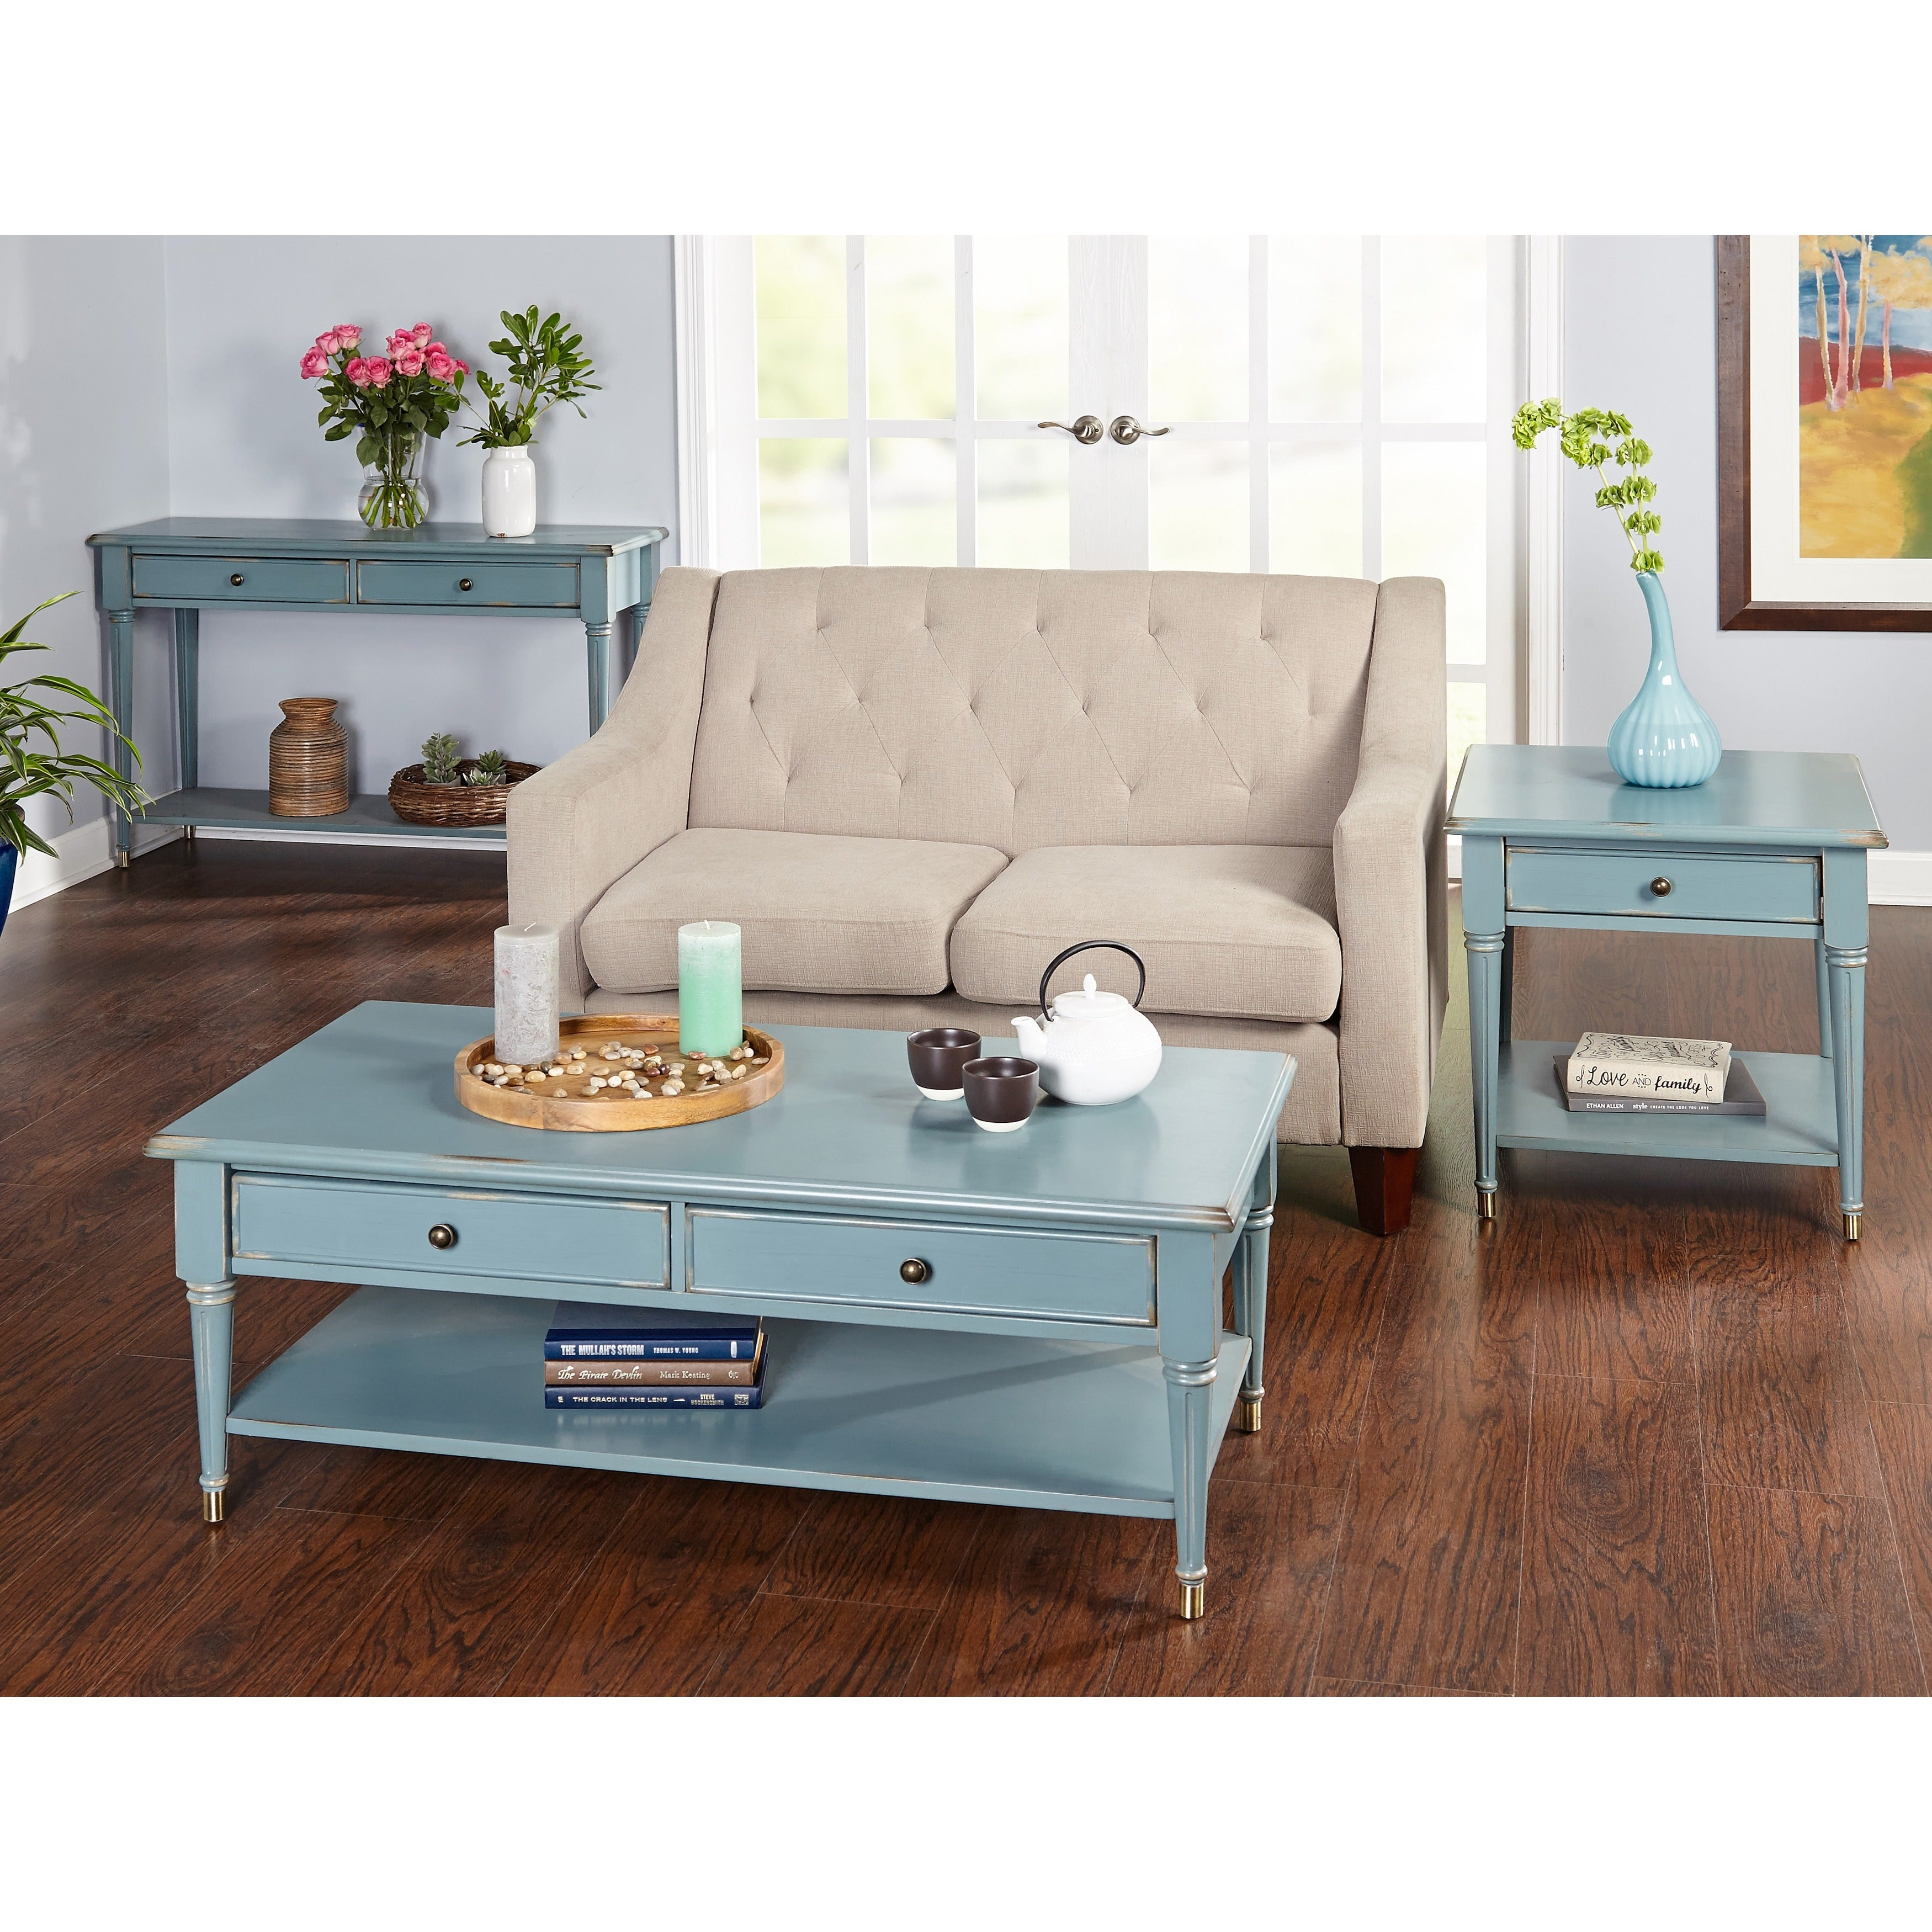 Shop simple living emilia antique blue sofa table free shipping today overstock com 12364613